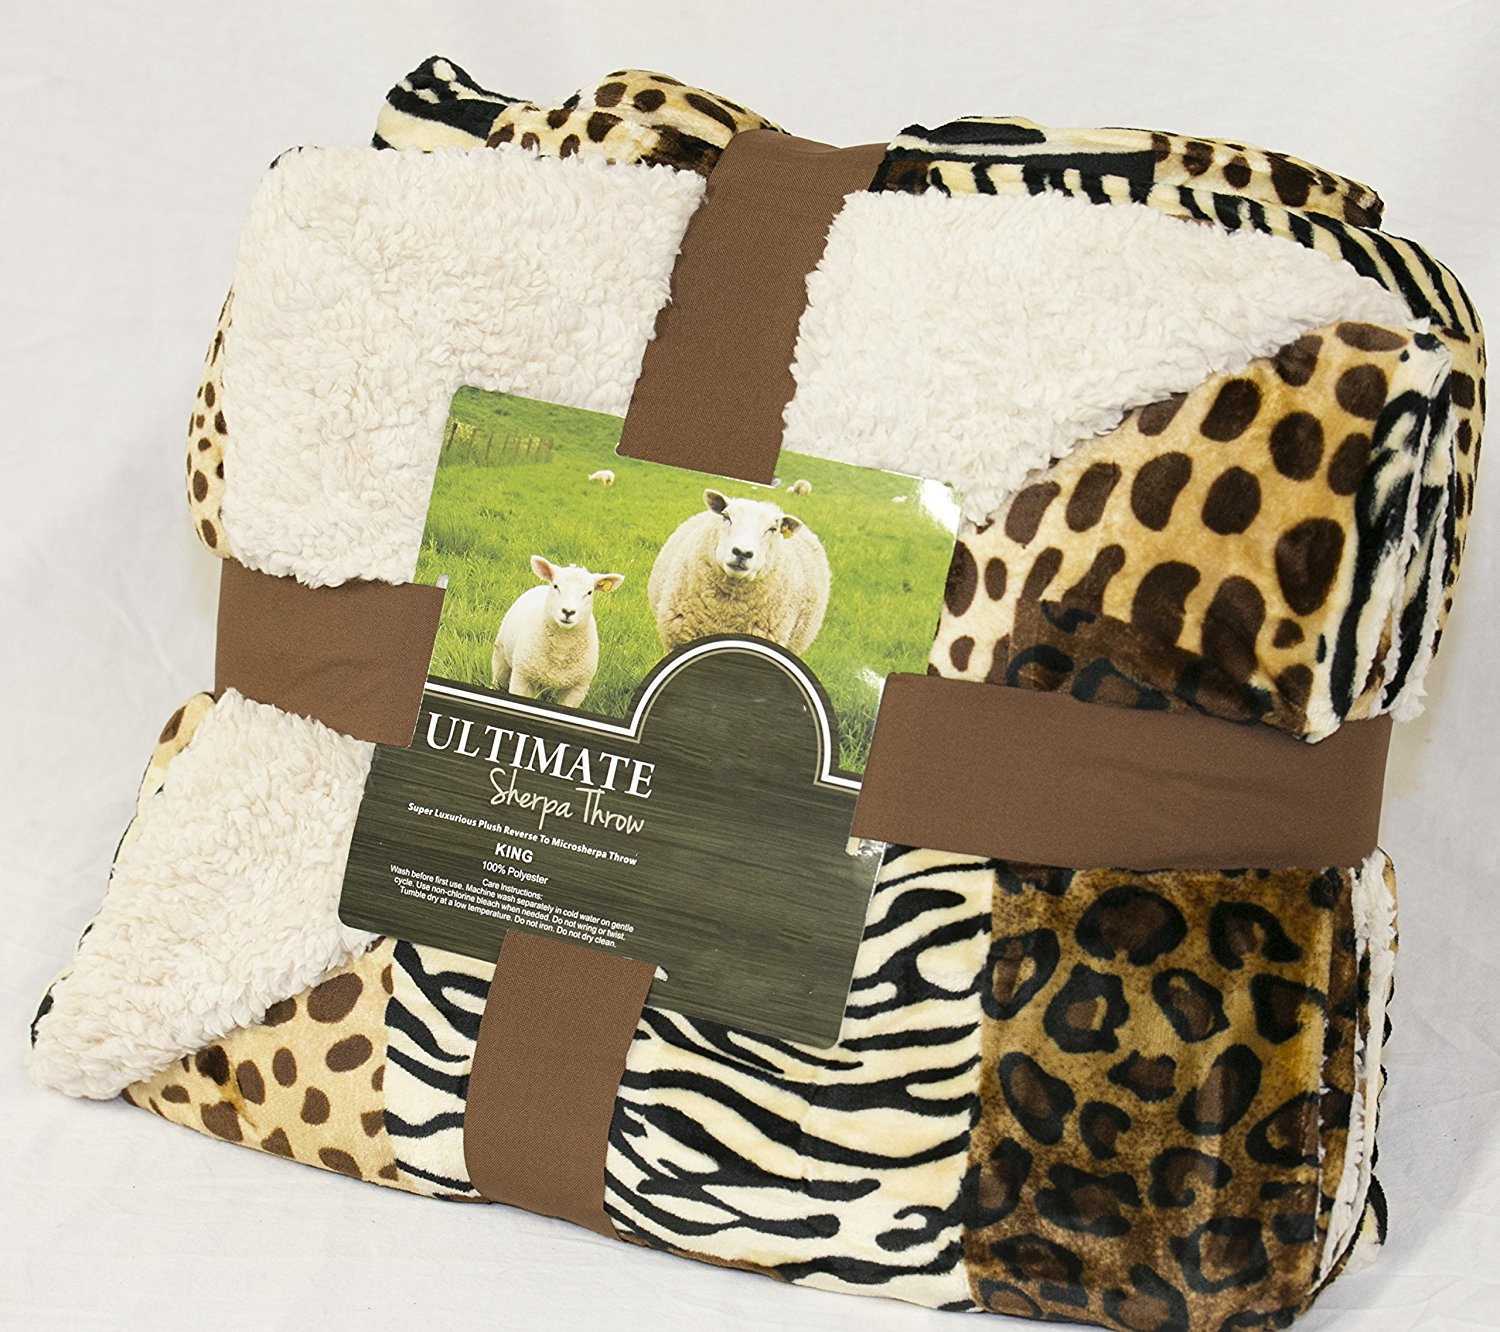 Fancy Collection Queen/king Size Print Blanket Sumptuously Soft Plush Solid Coffee/Brown with Sherpa Reversible Winter Blankets Bedspread Super Soft New (Safari)